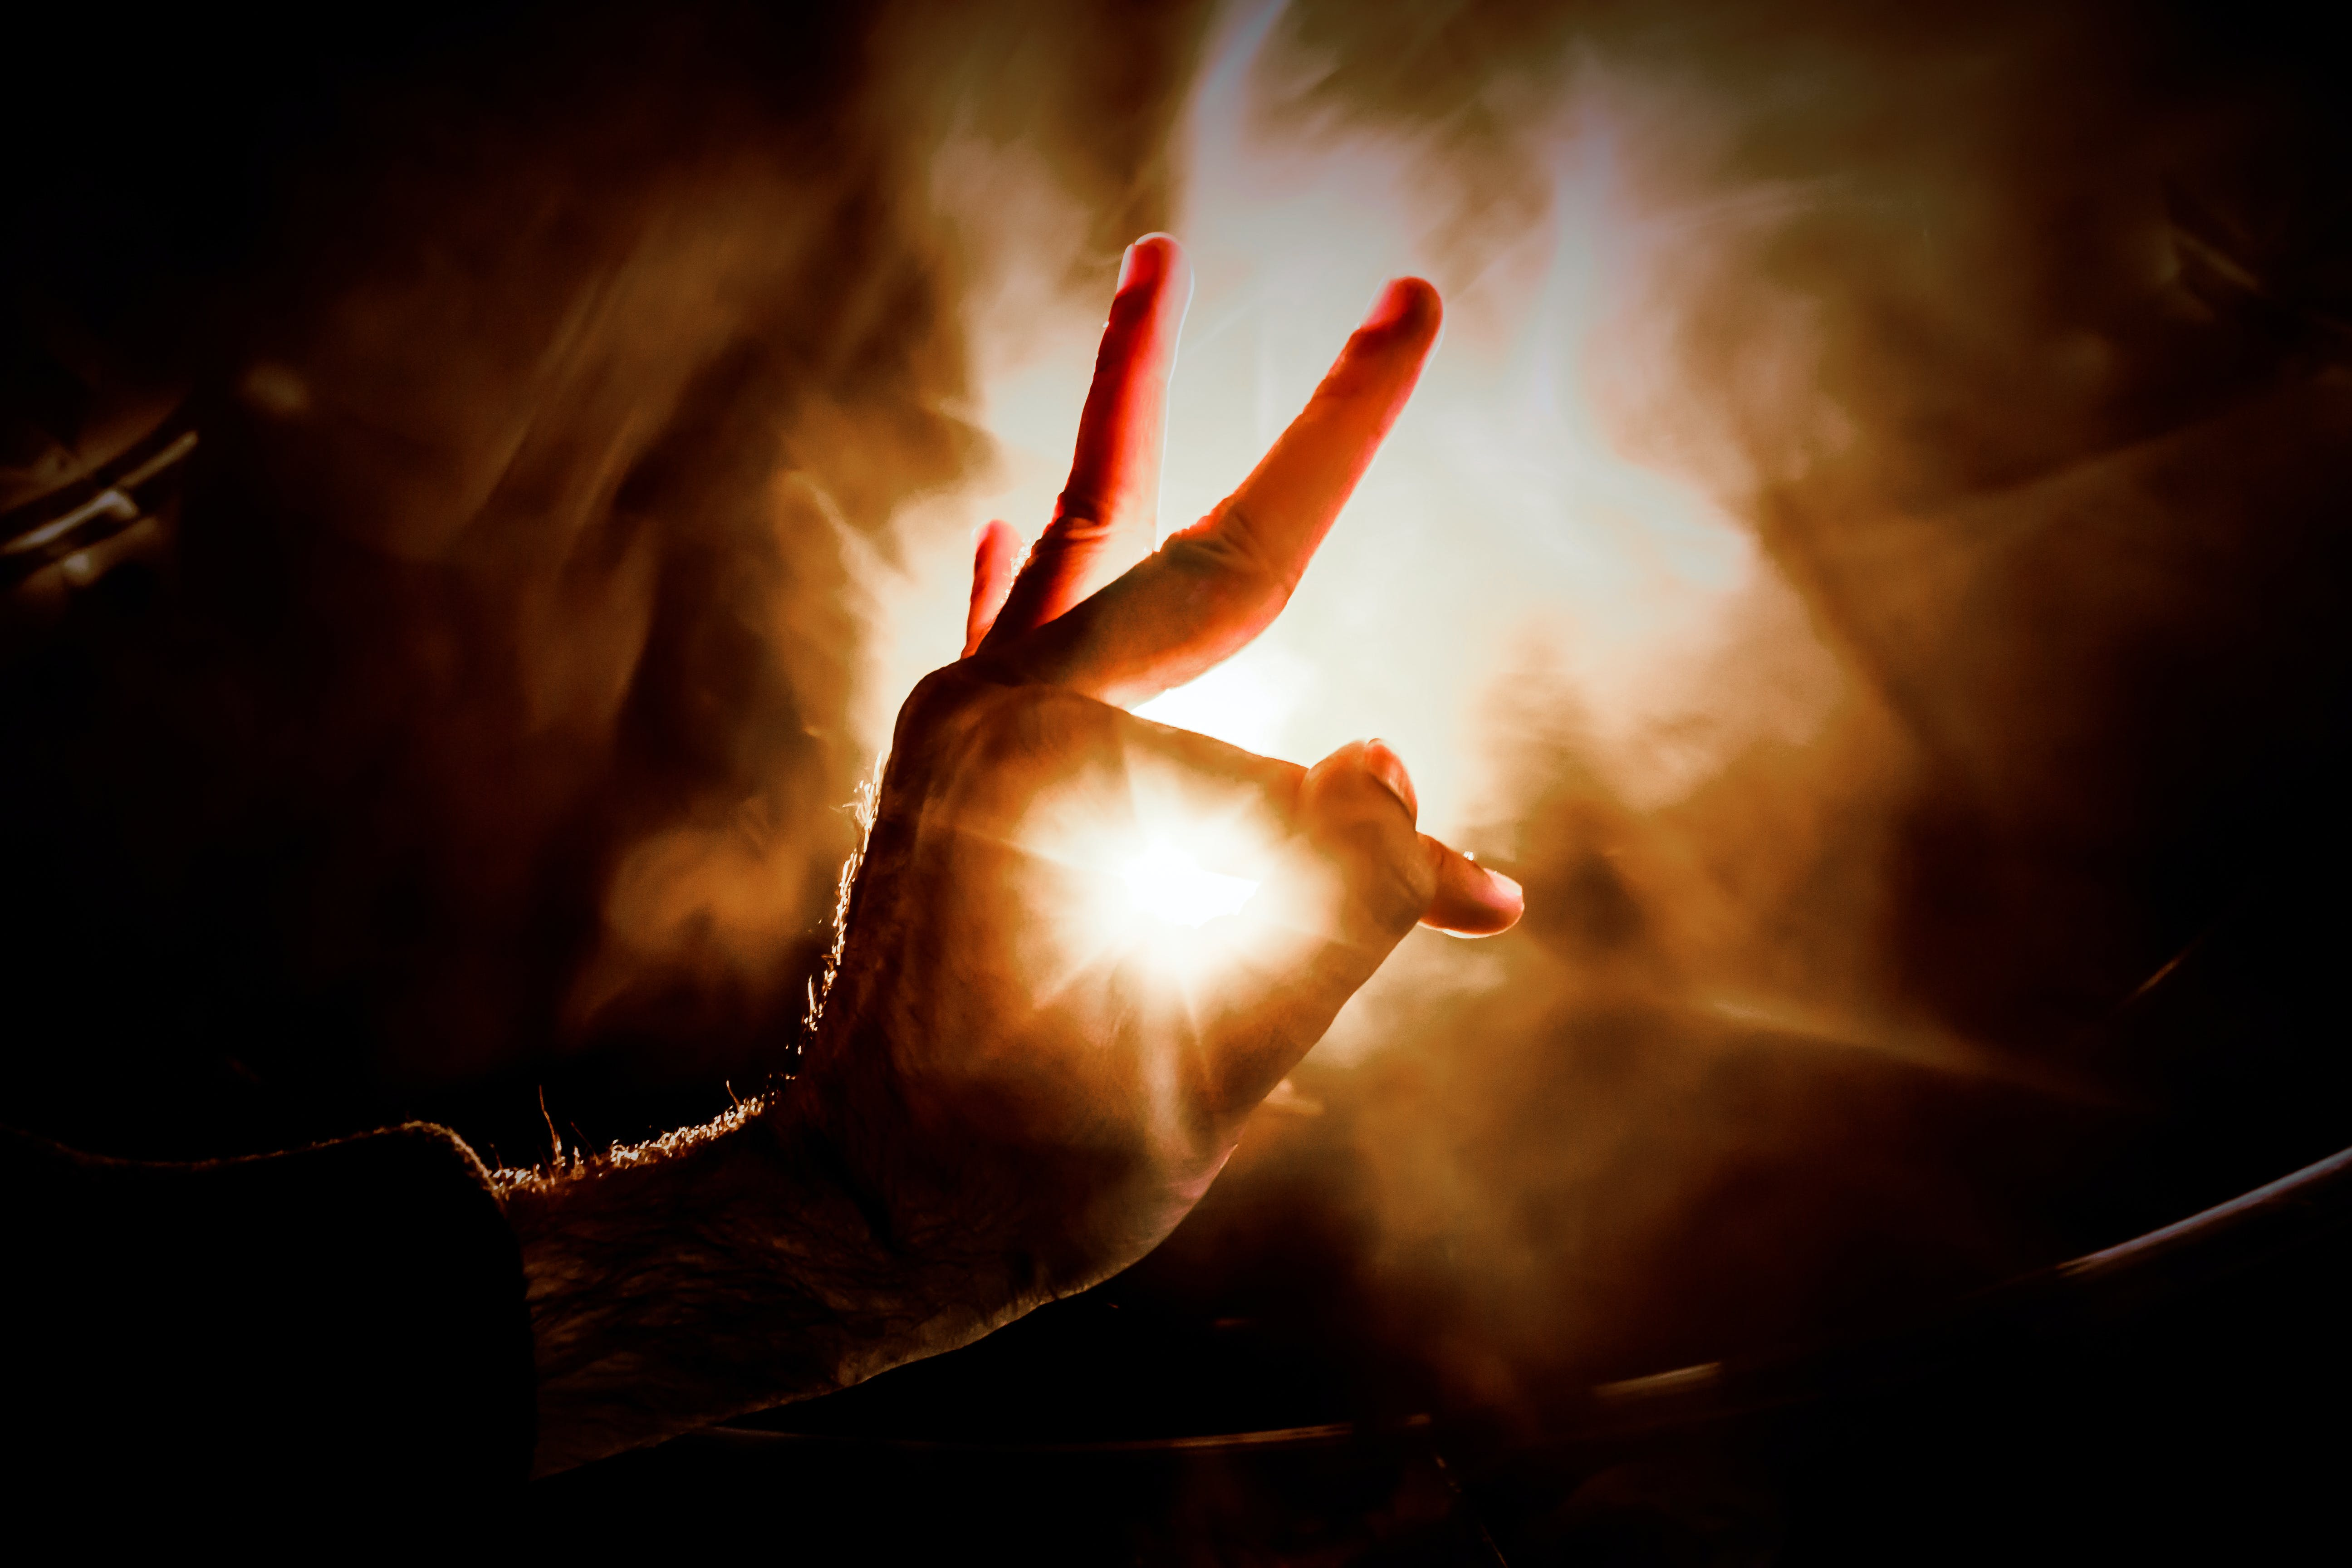 Hand Gesture Lighted Upon on